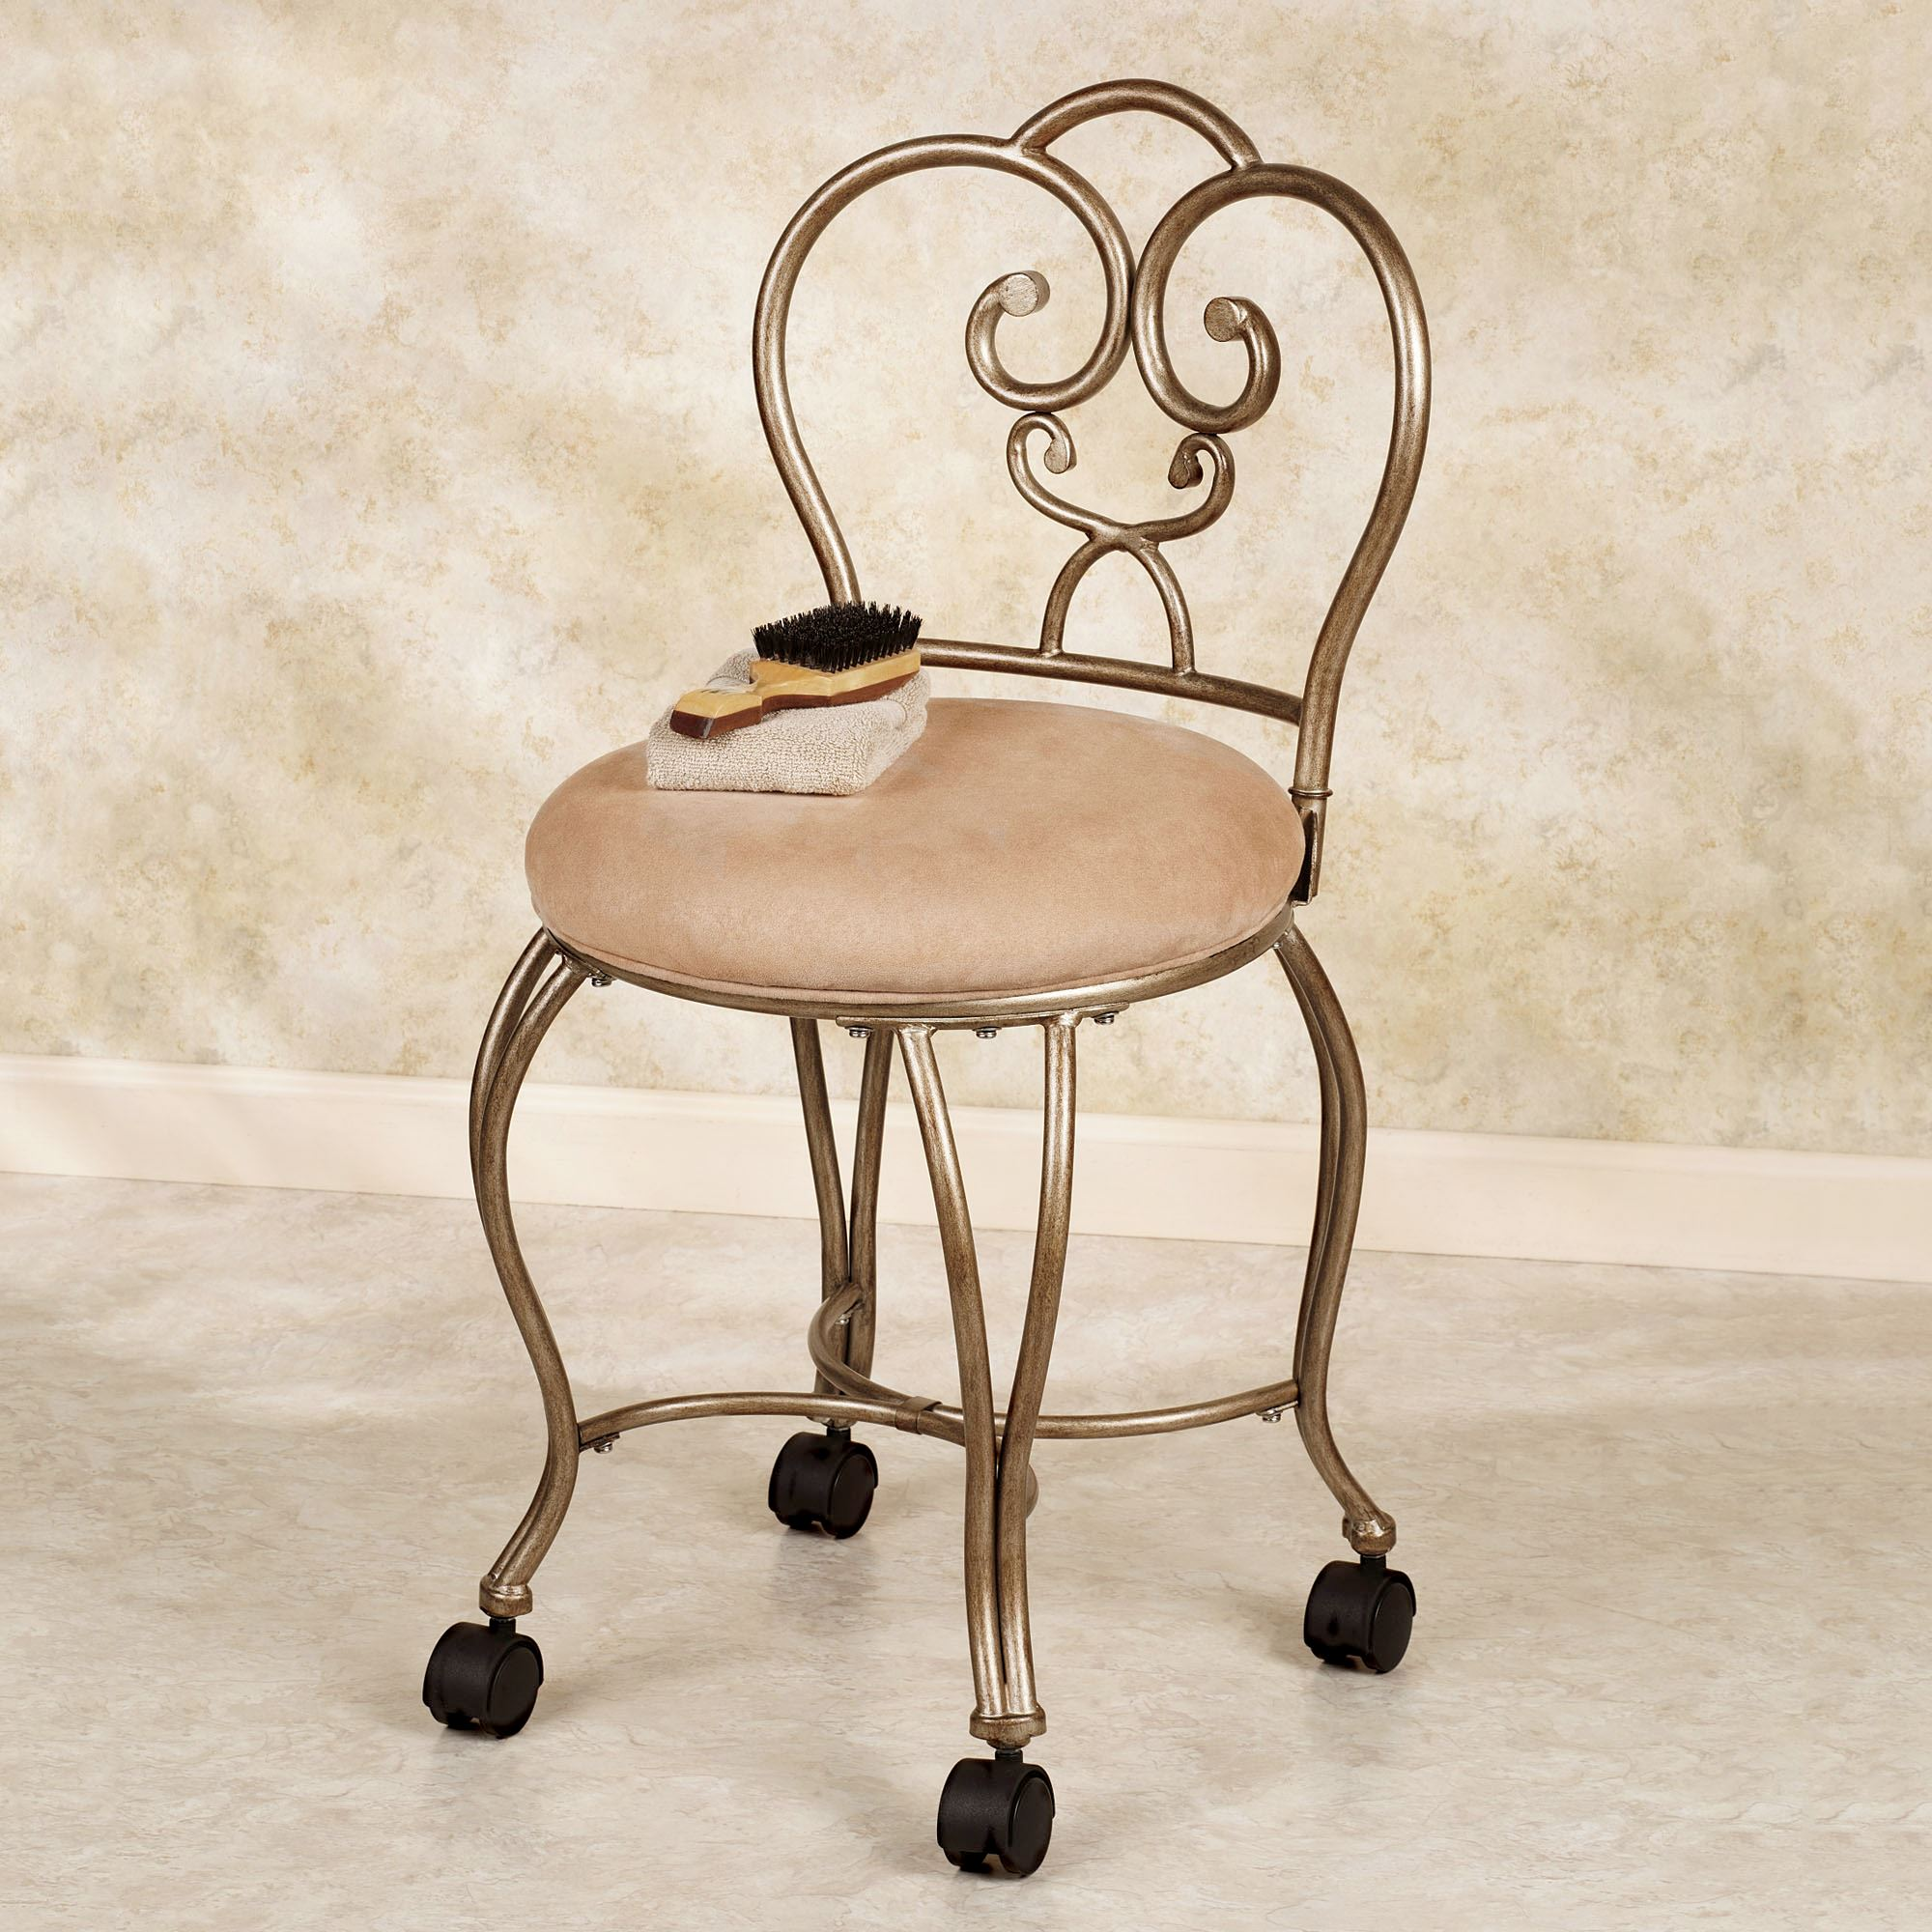 Uncategorized Vanity Stool Chair lecia vanity chair click to expand